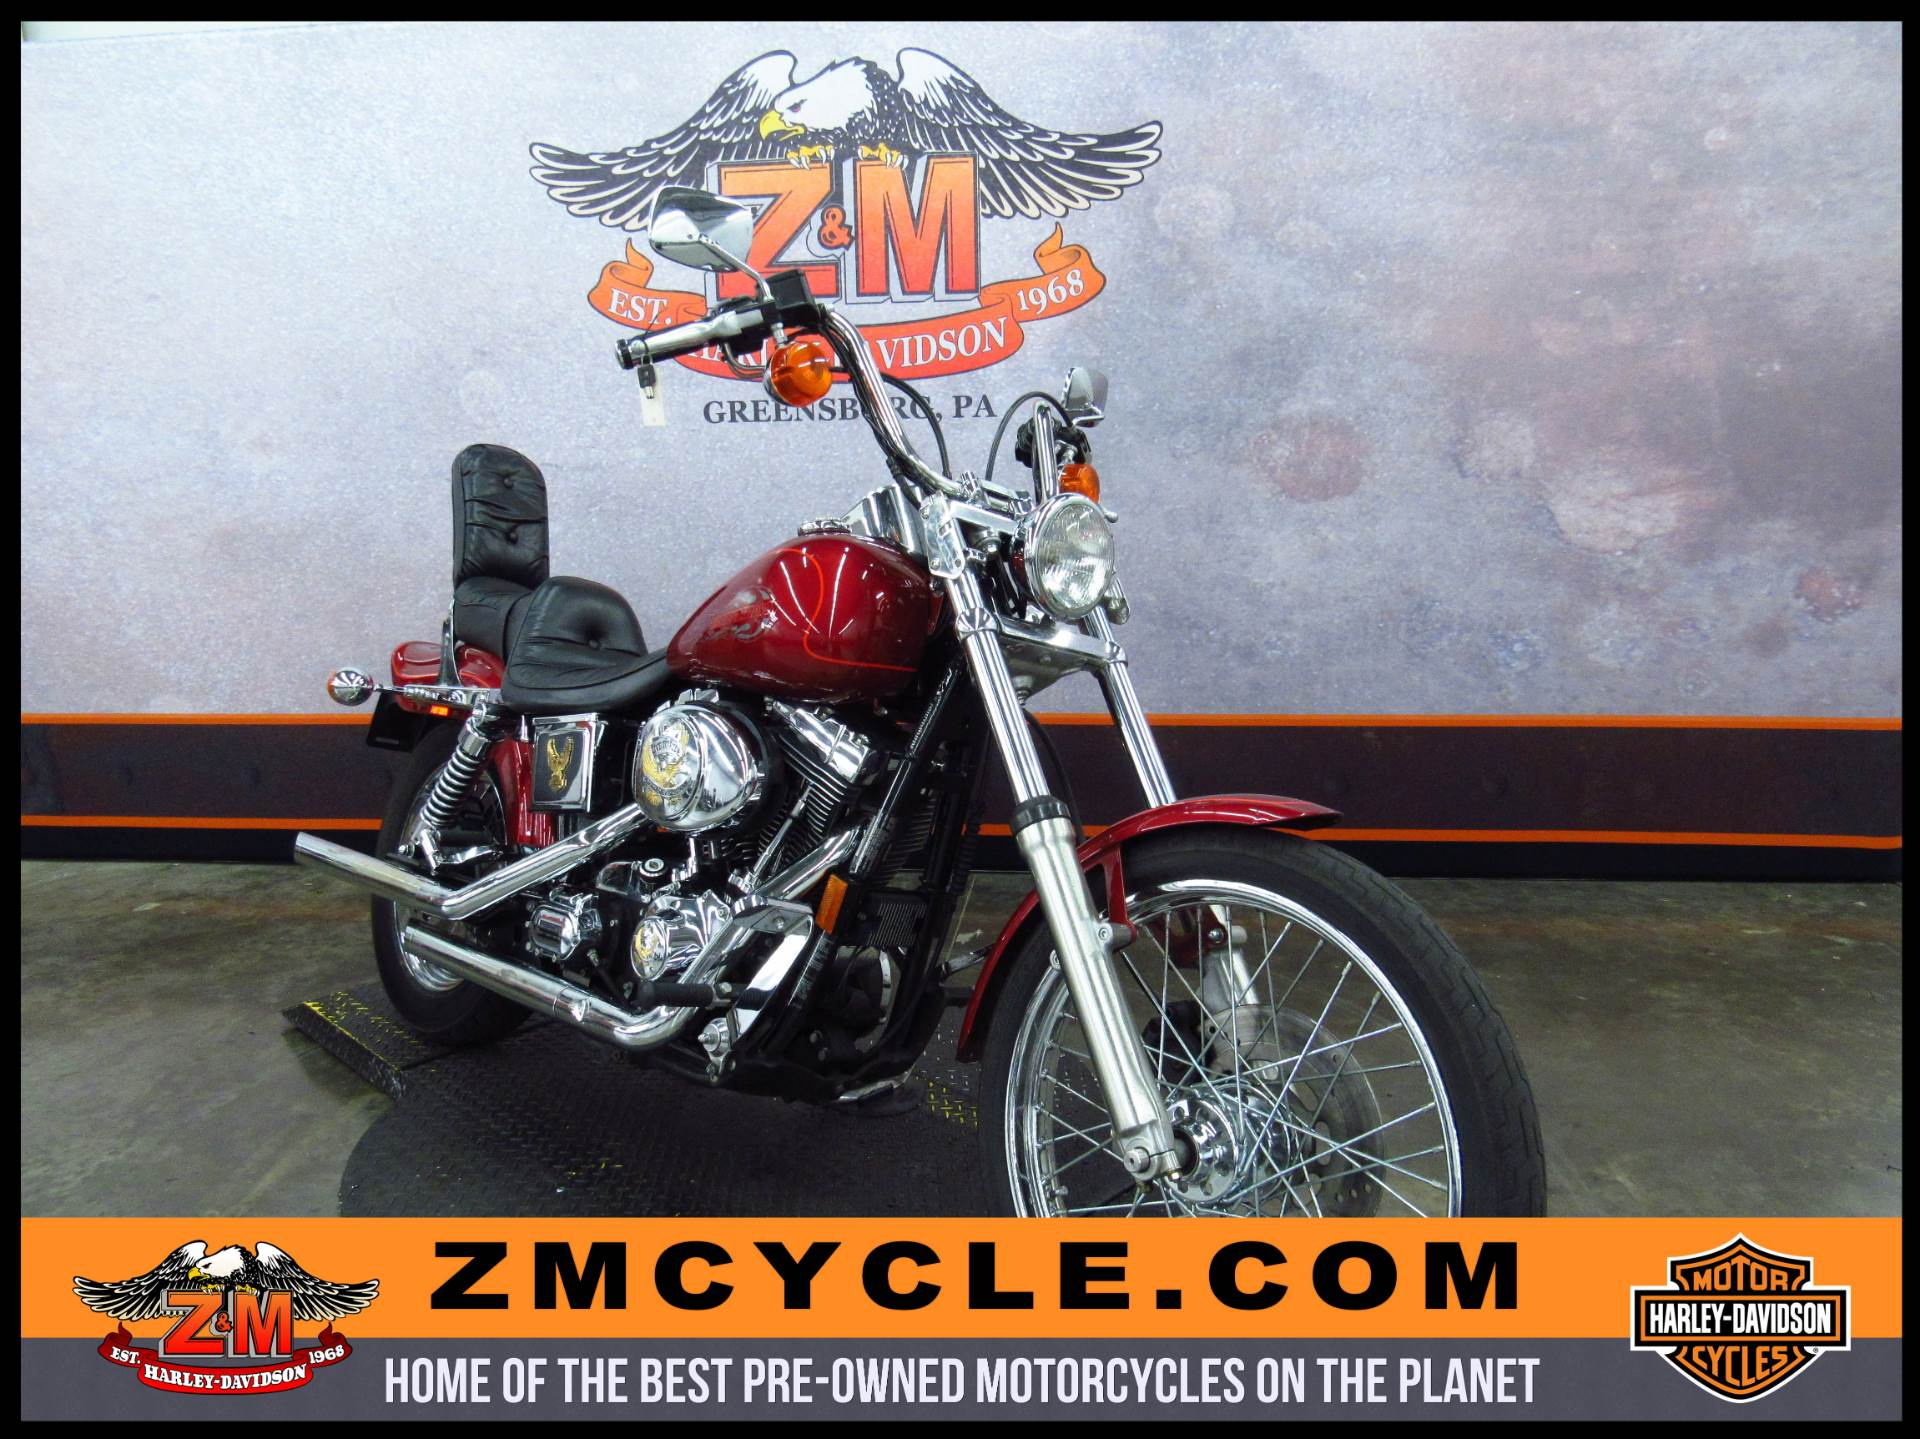 1999 FXDWG Dyna Wide Glide